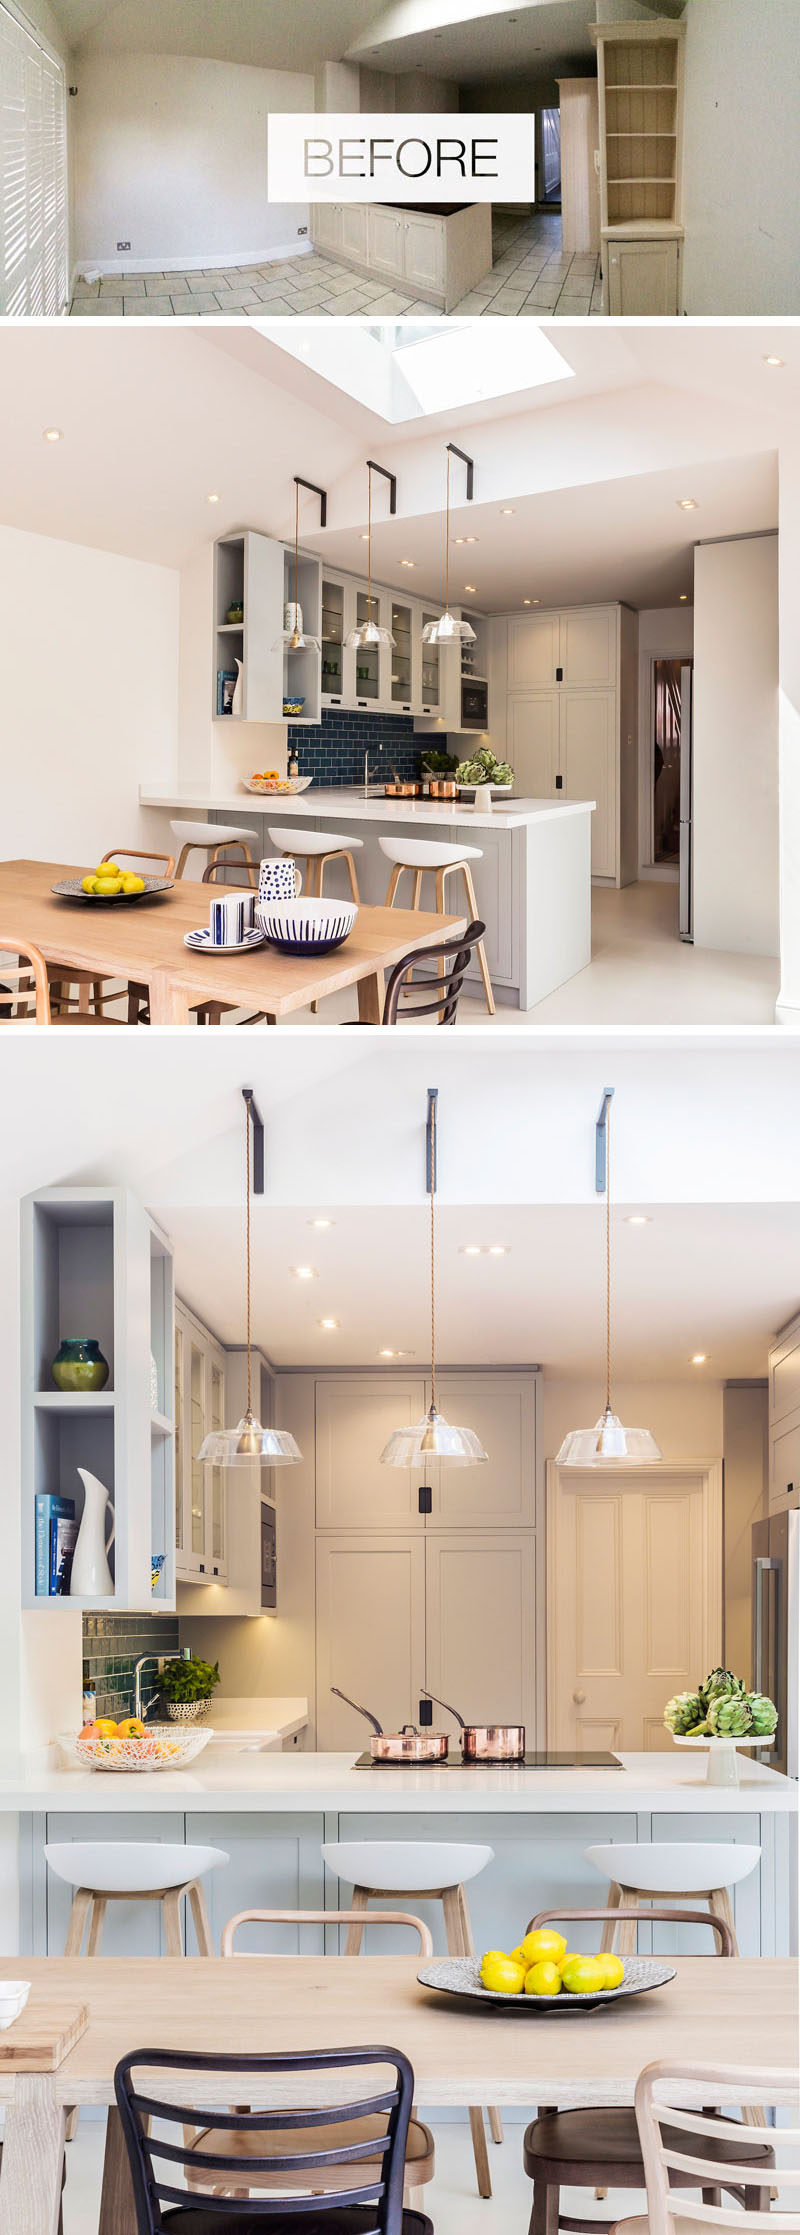 To add additional light to this renovated dining and kitchen space, the designersfabricated bespoke metal brackets from which to suspend 3 glass pendant lights which hover over the counter. #RenovatedKitchen #DiningRoom